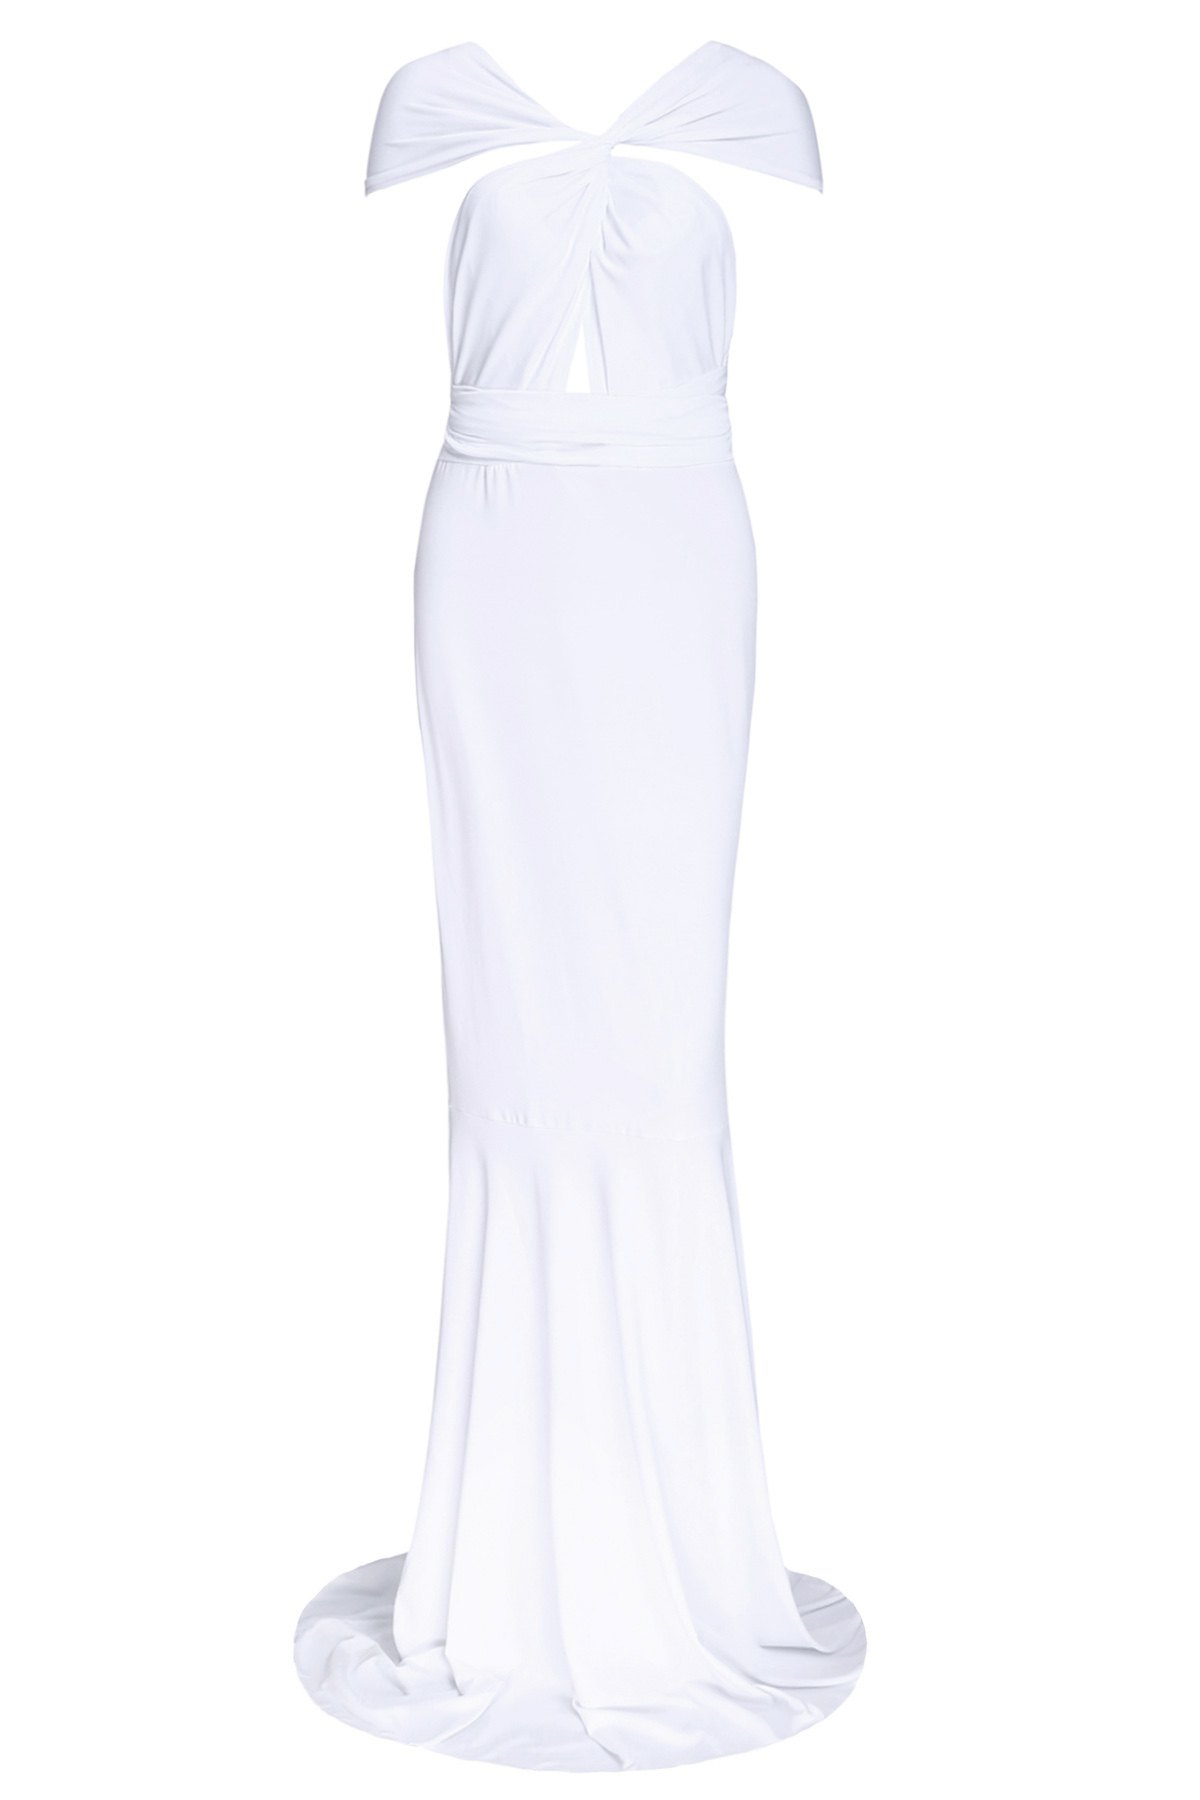 Sexy Women's Plunging Neck White Dress